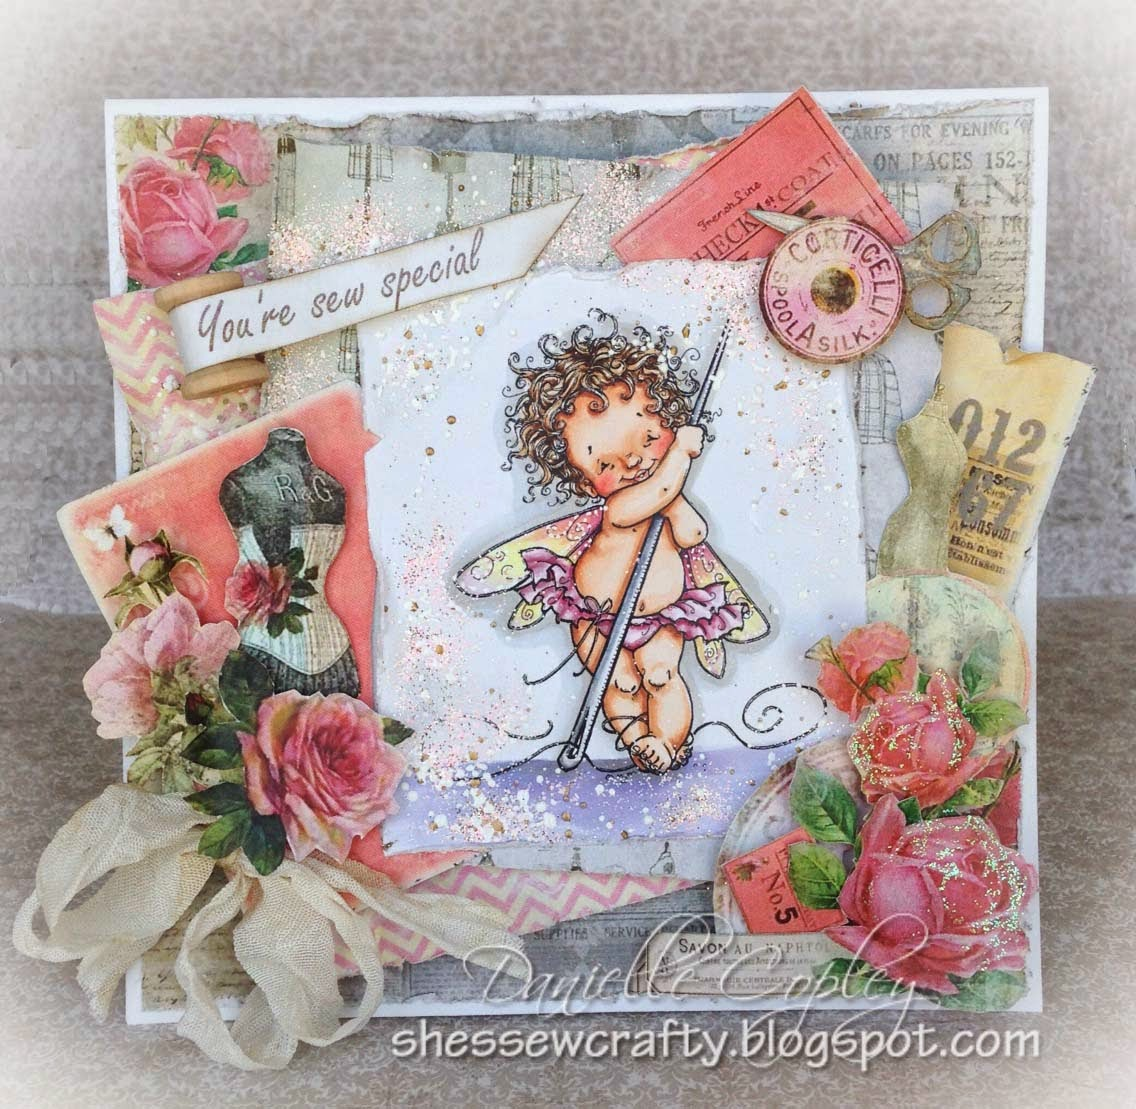 Mo's Digital Pencil, Fairy Needle using Marion Smith's Garment District for She's Sew Crafty and Scrapbook Maven